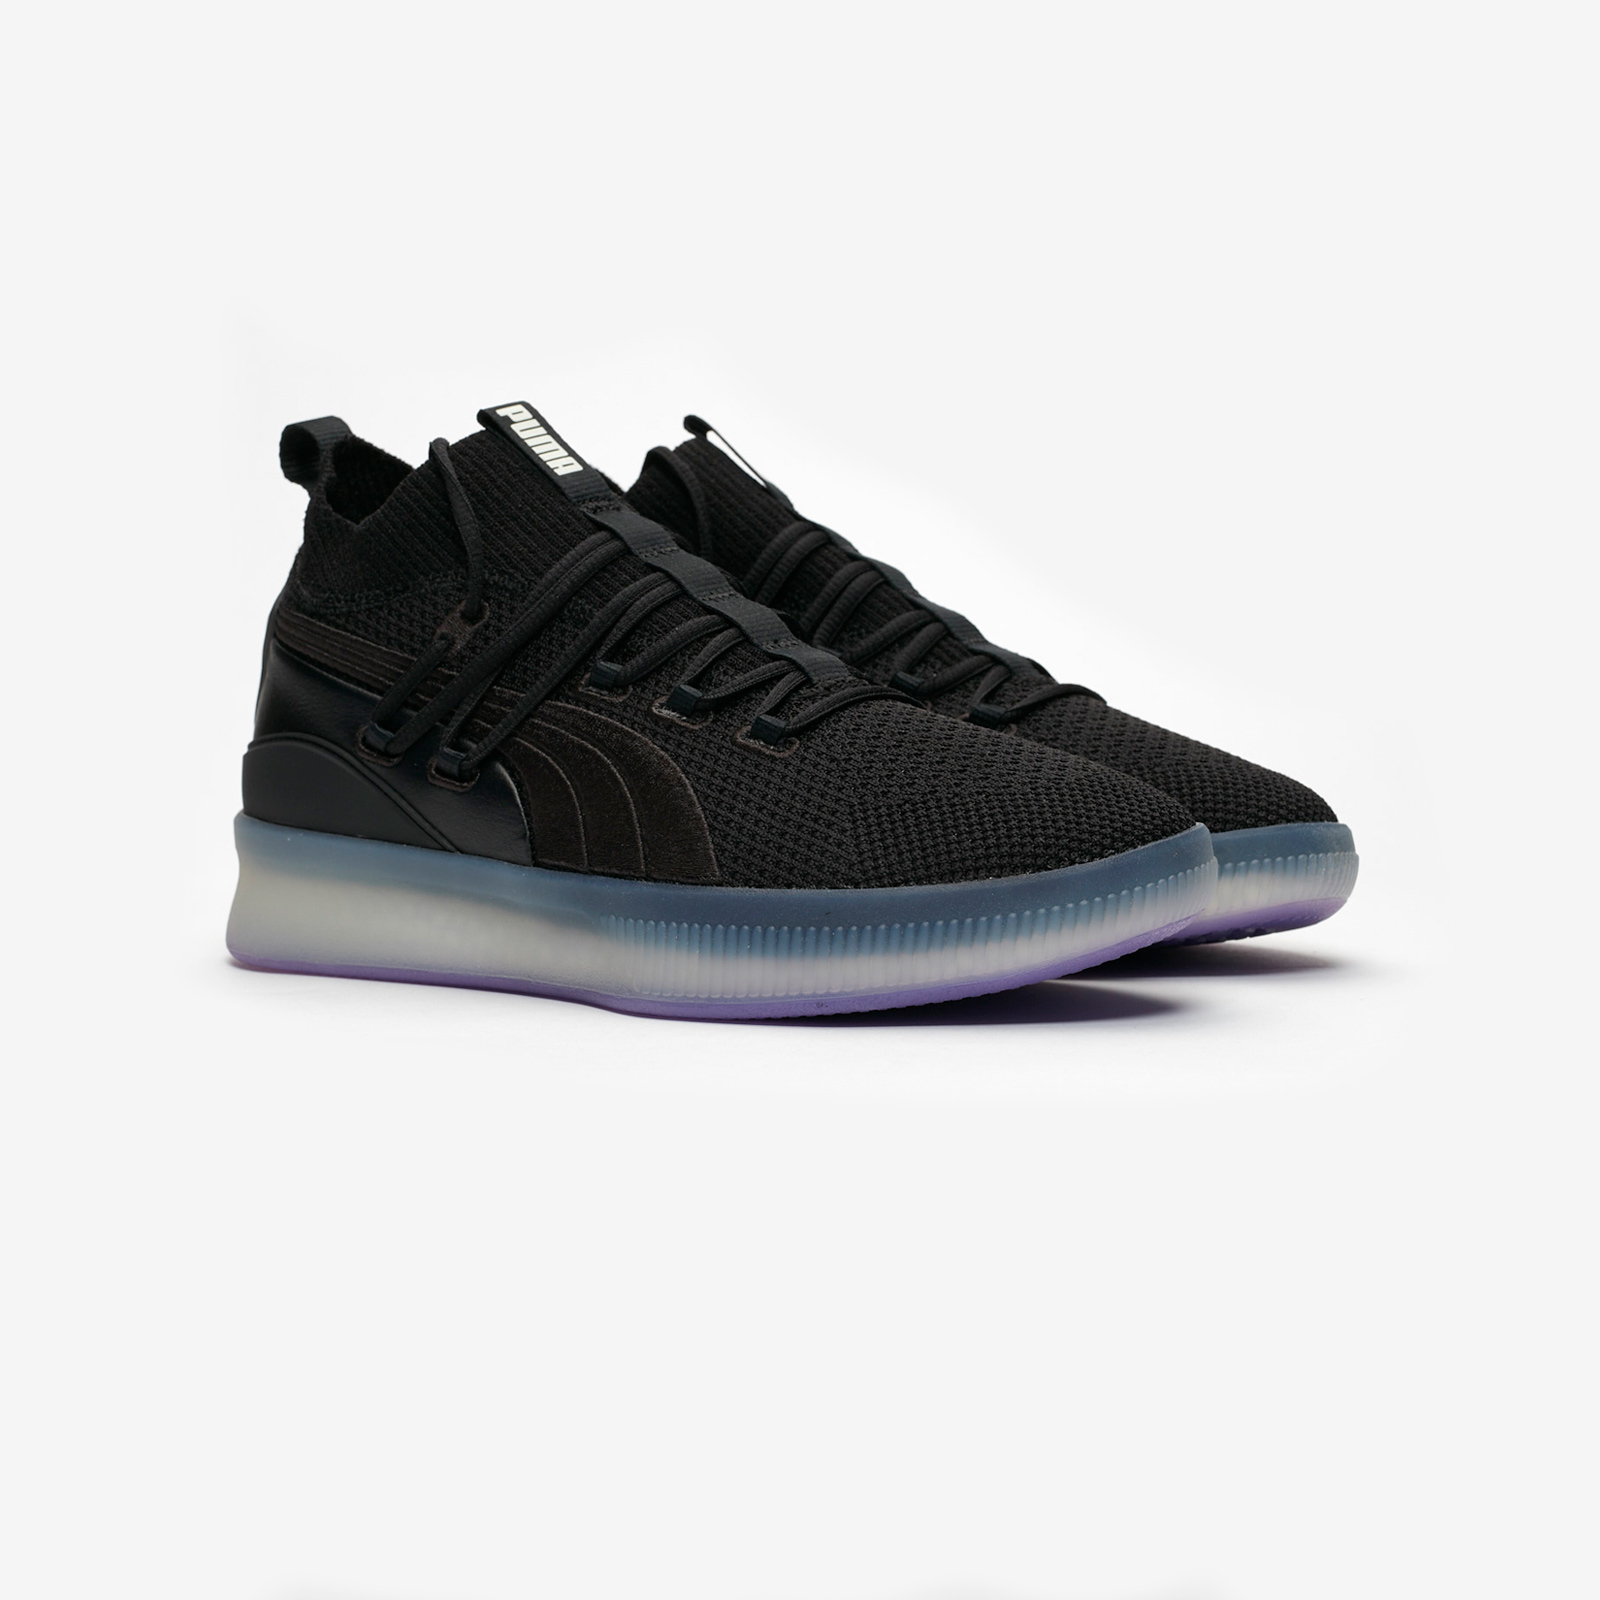 new concept b6227 f6401 Puma Clyde Court Disrupt - 191715-06 - Sneakersnstuff ...